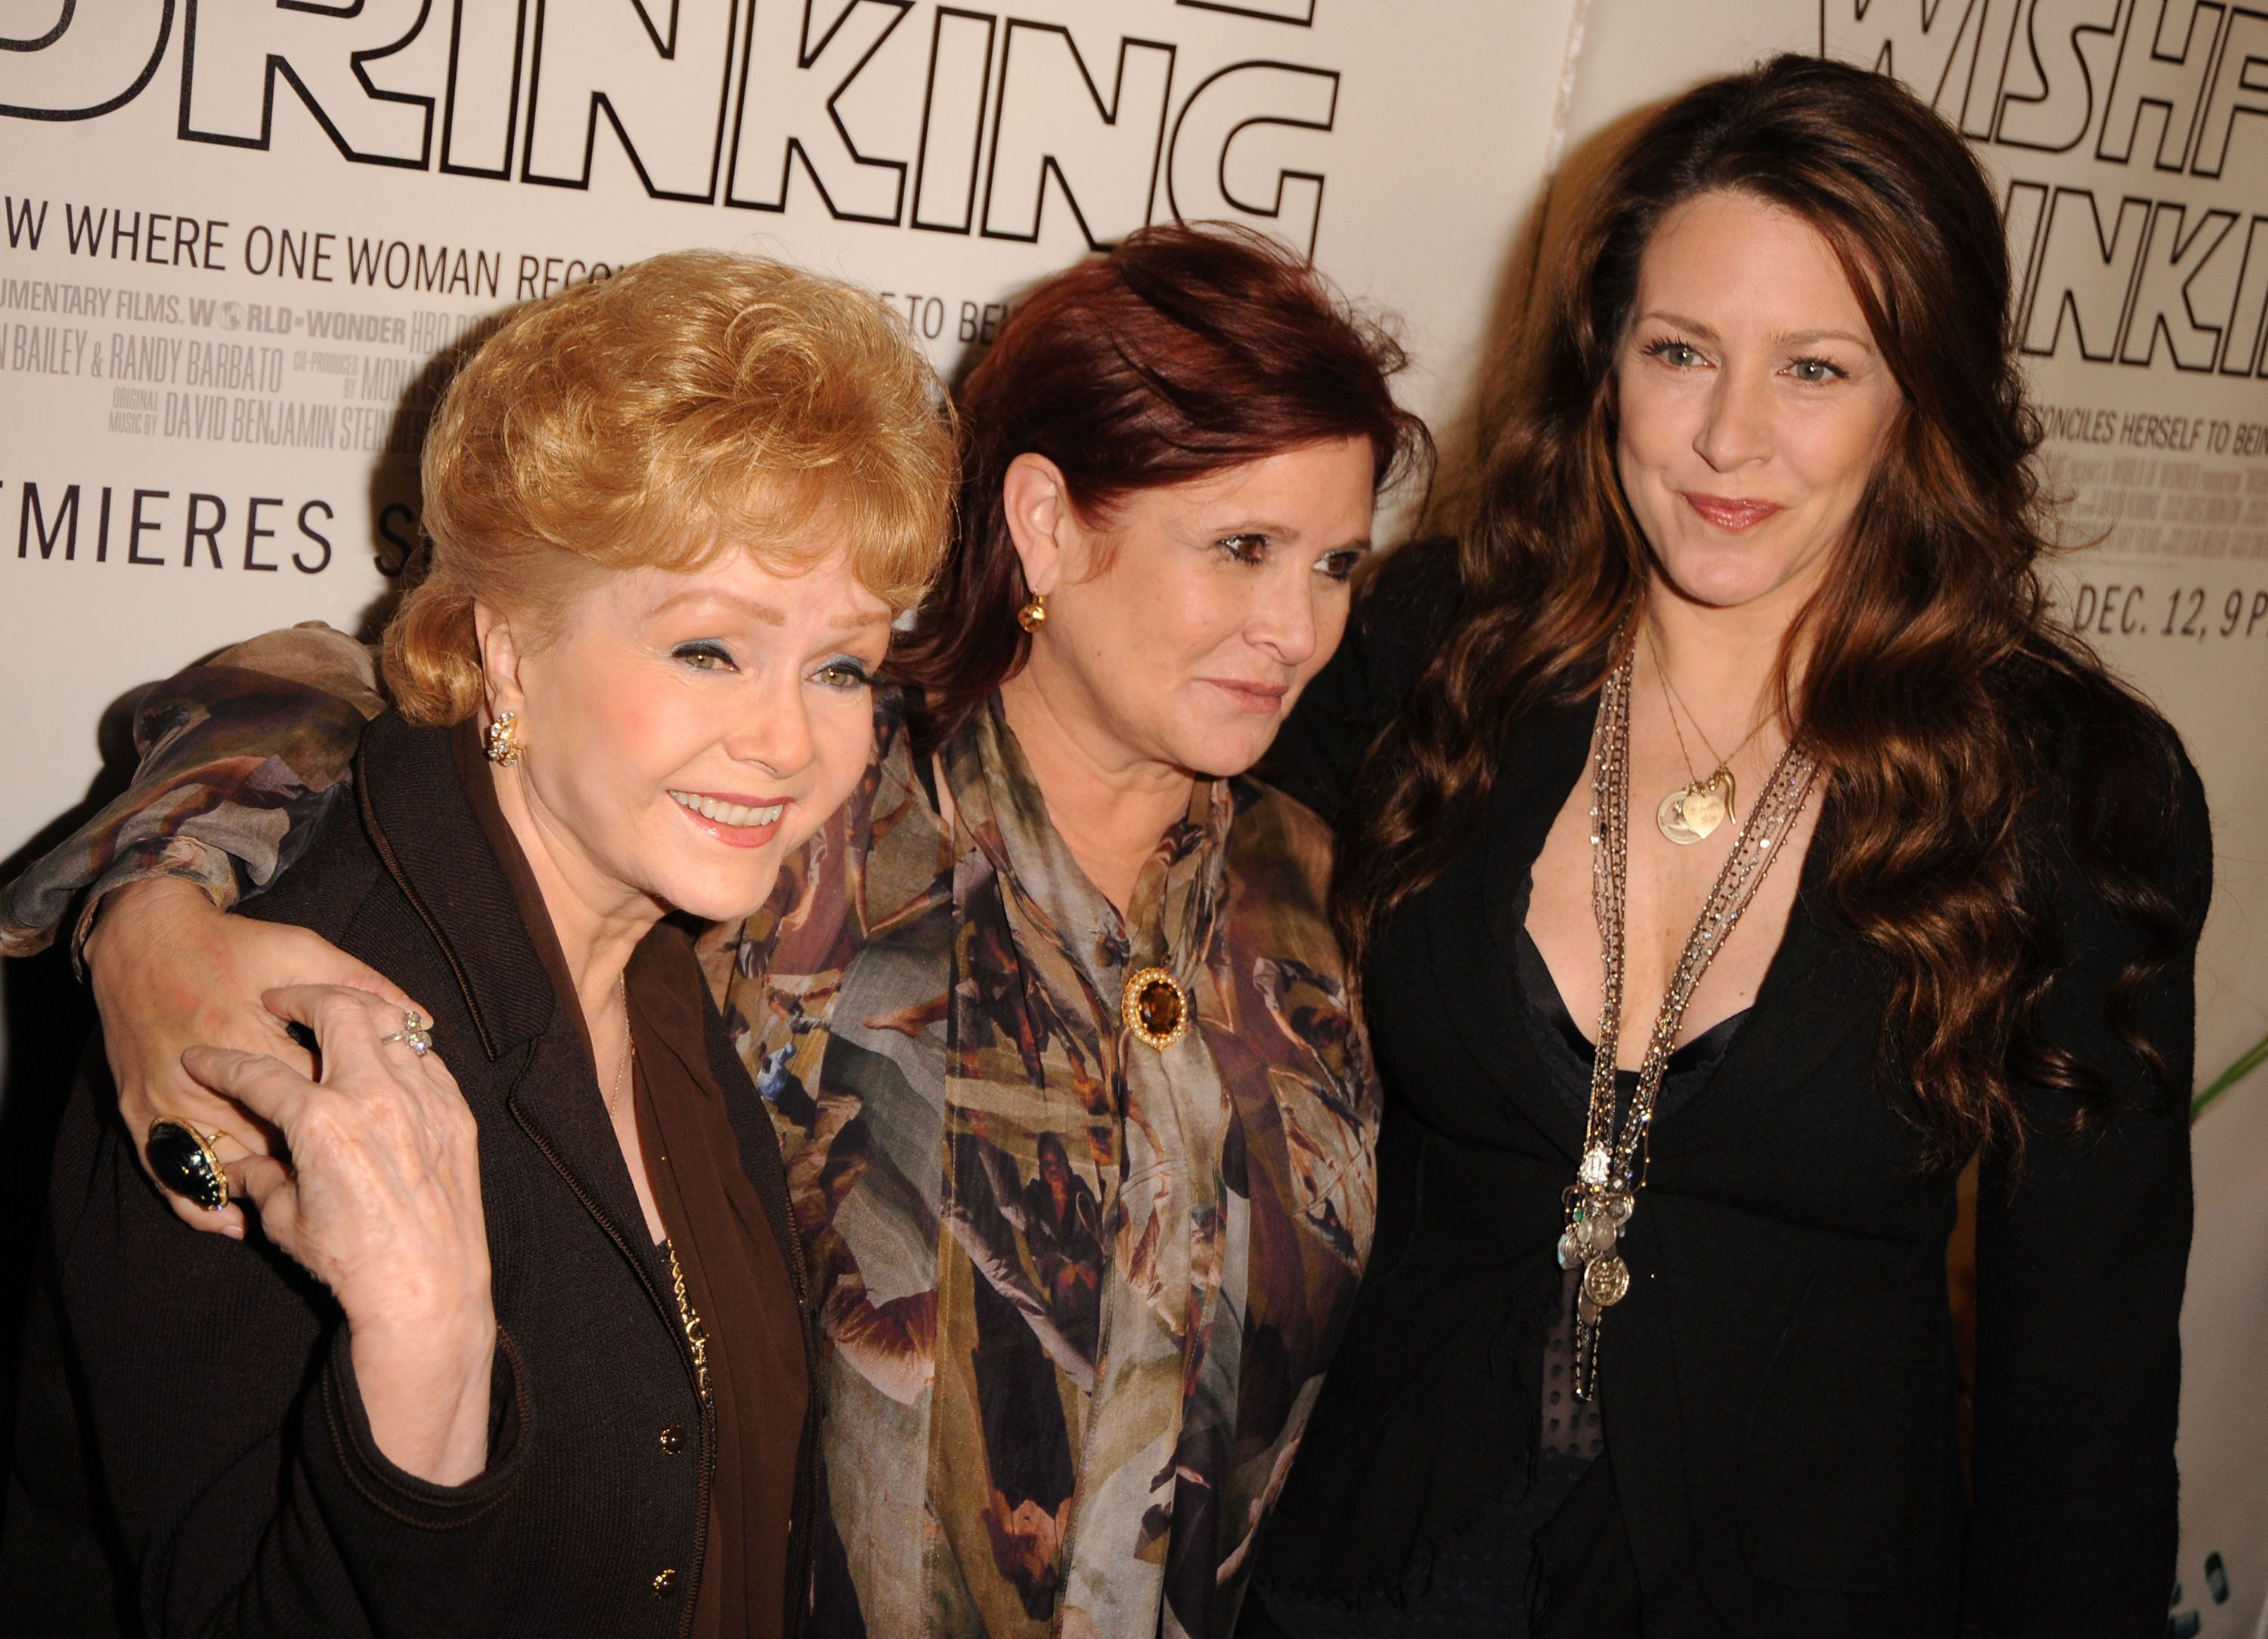 Joely Fisher (right) spent time with Debbie Reynolds (left) in the hospital at Carrie Fisher's (center) bedside on Christmas.